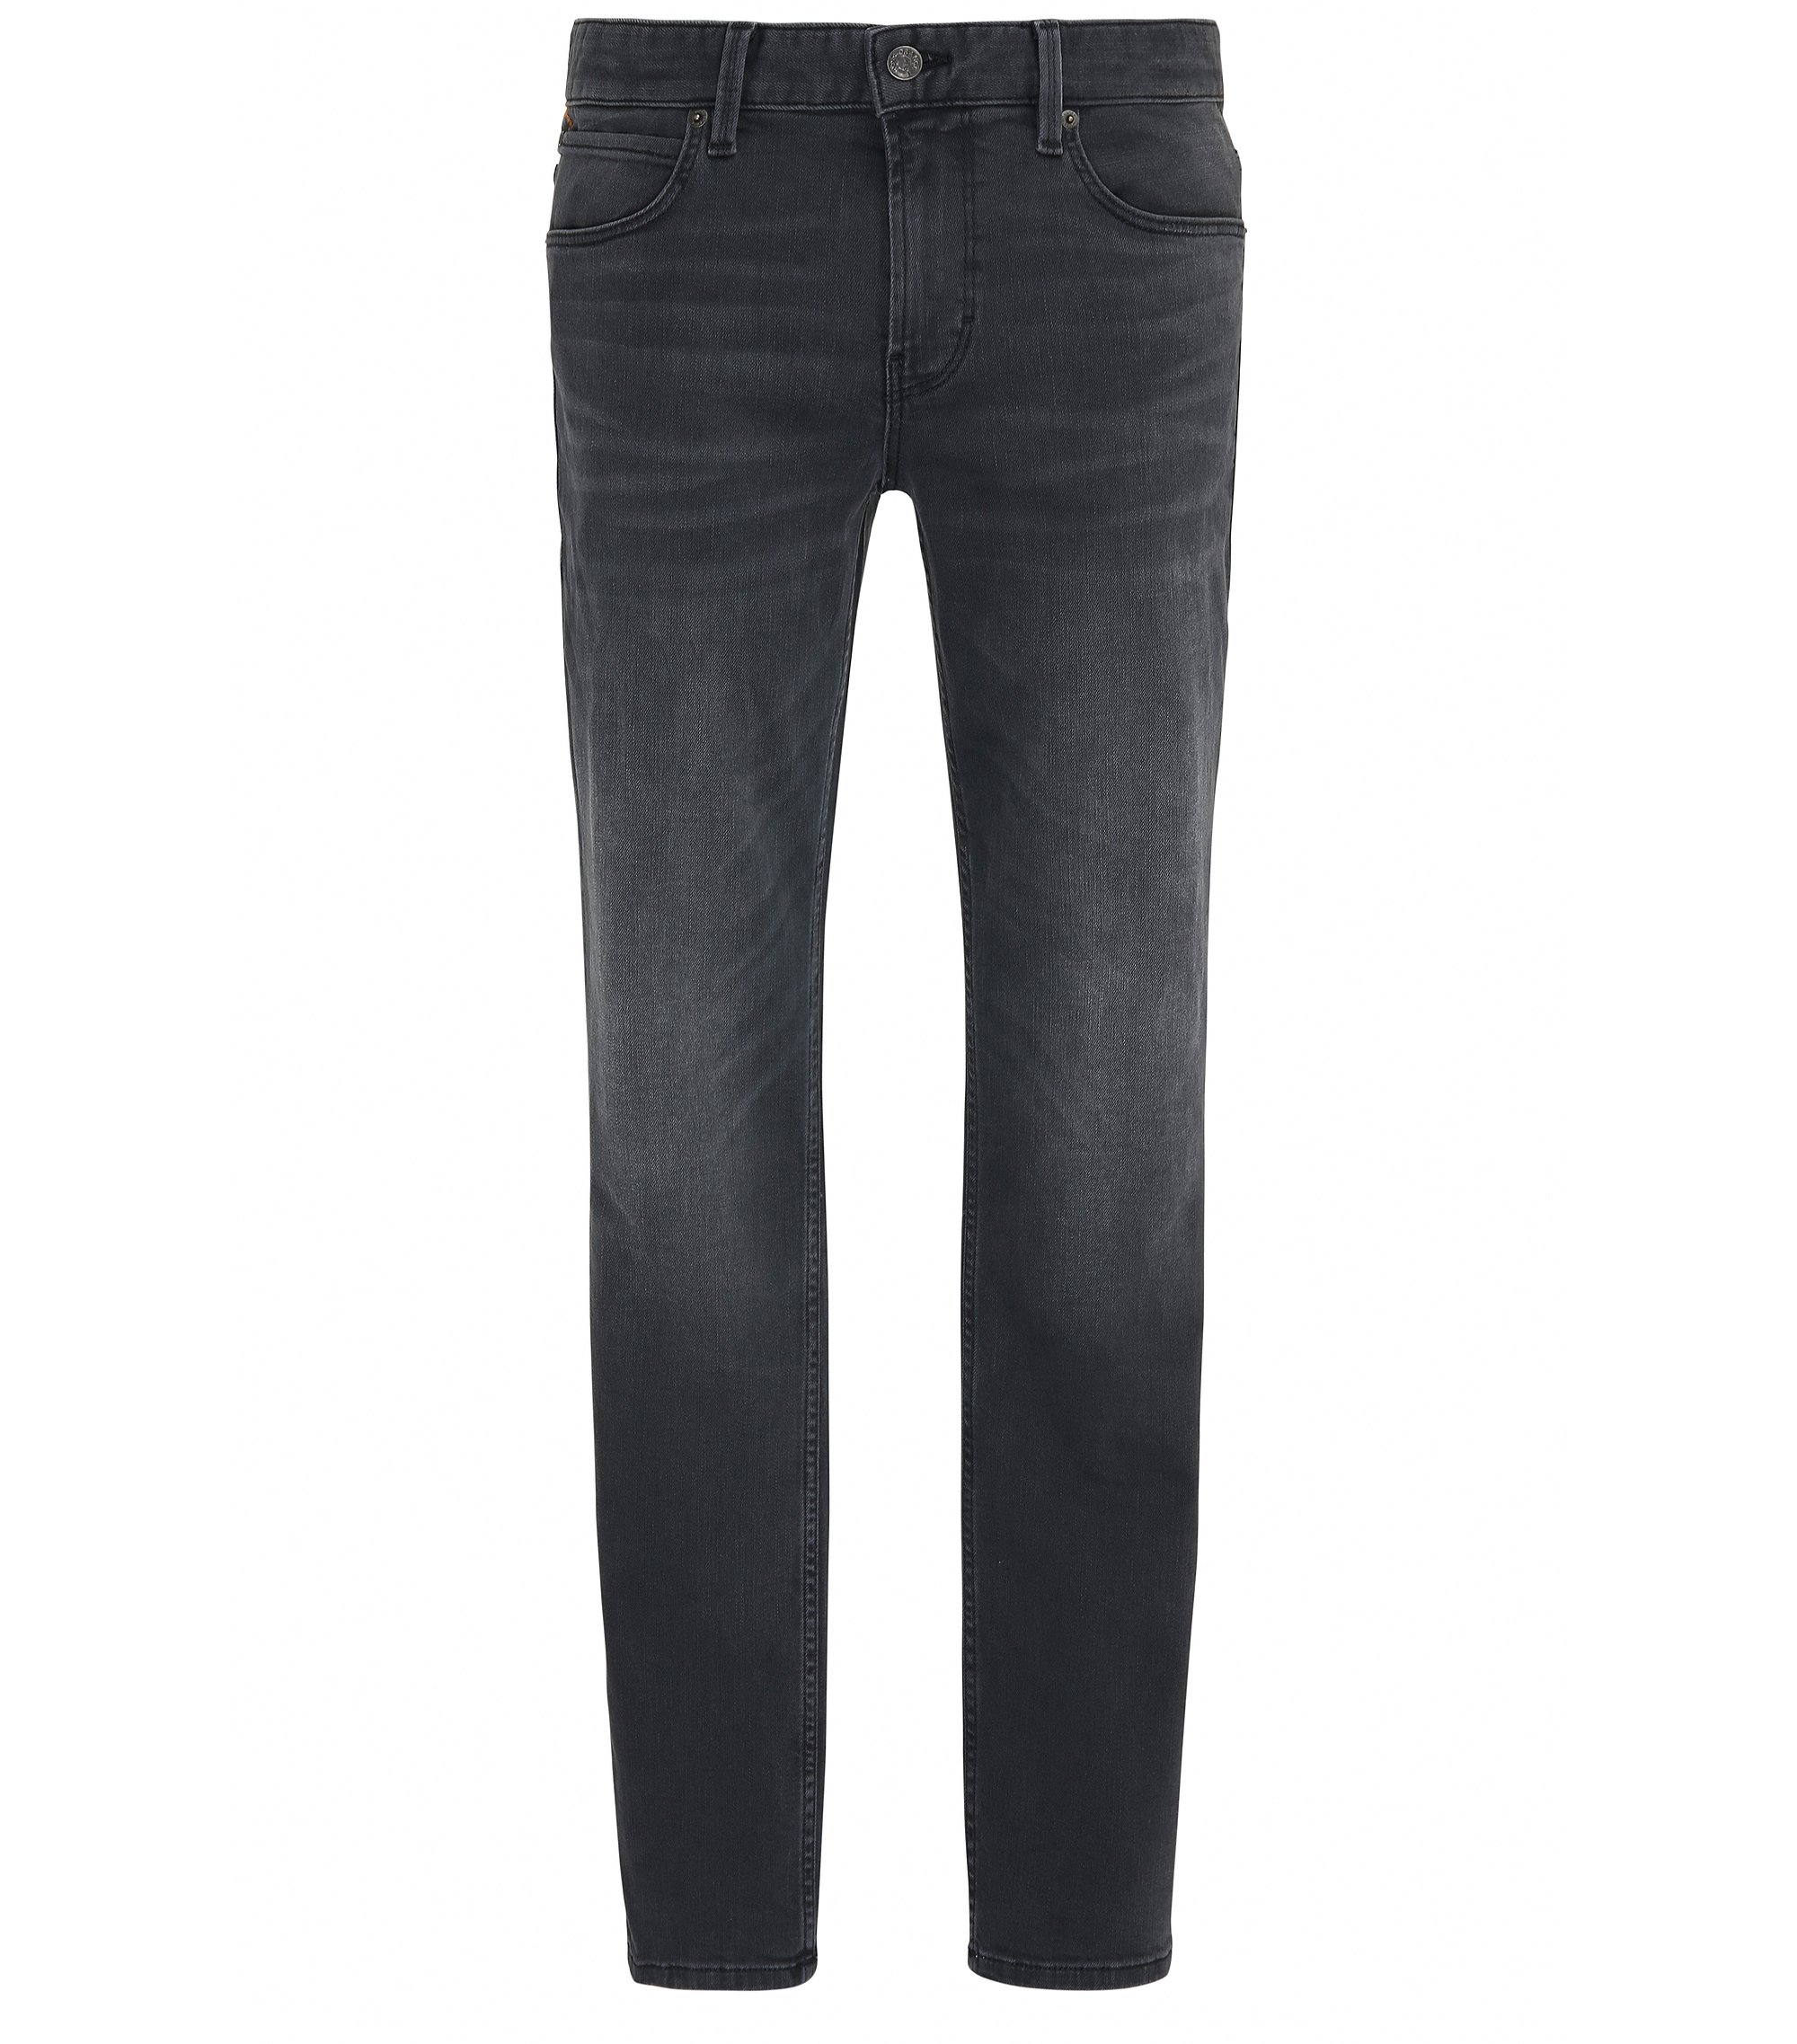 Slim-Fit Jeans aus Stretch-Denim, Schwarz